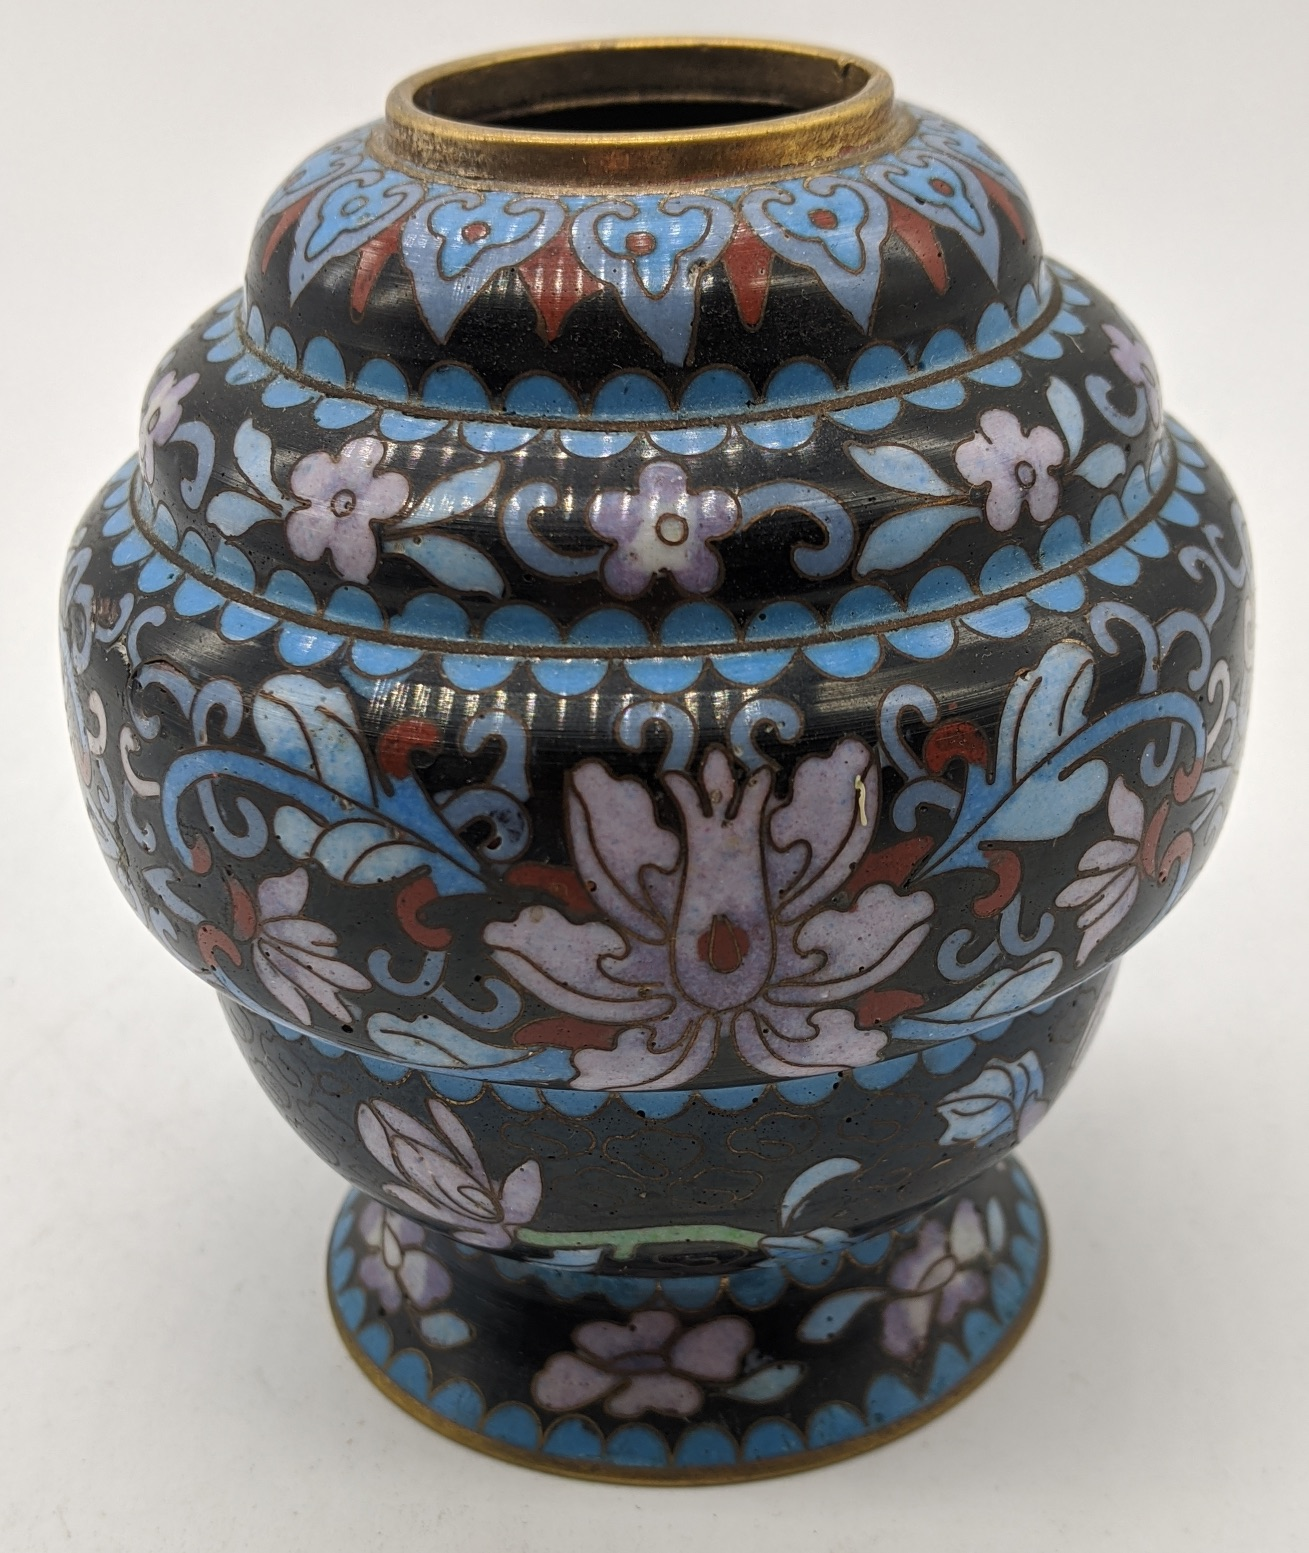 A late 19th/early 20th century Chinese cloisonne enamel brush pot, H.8.5cm